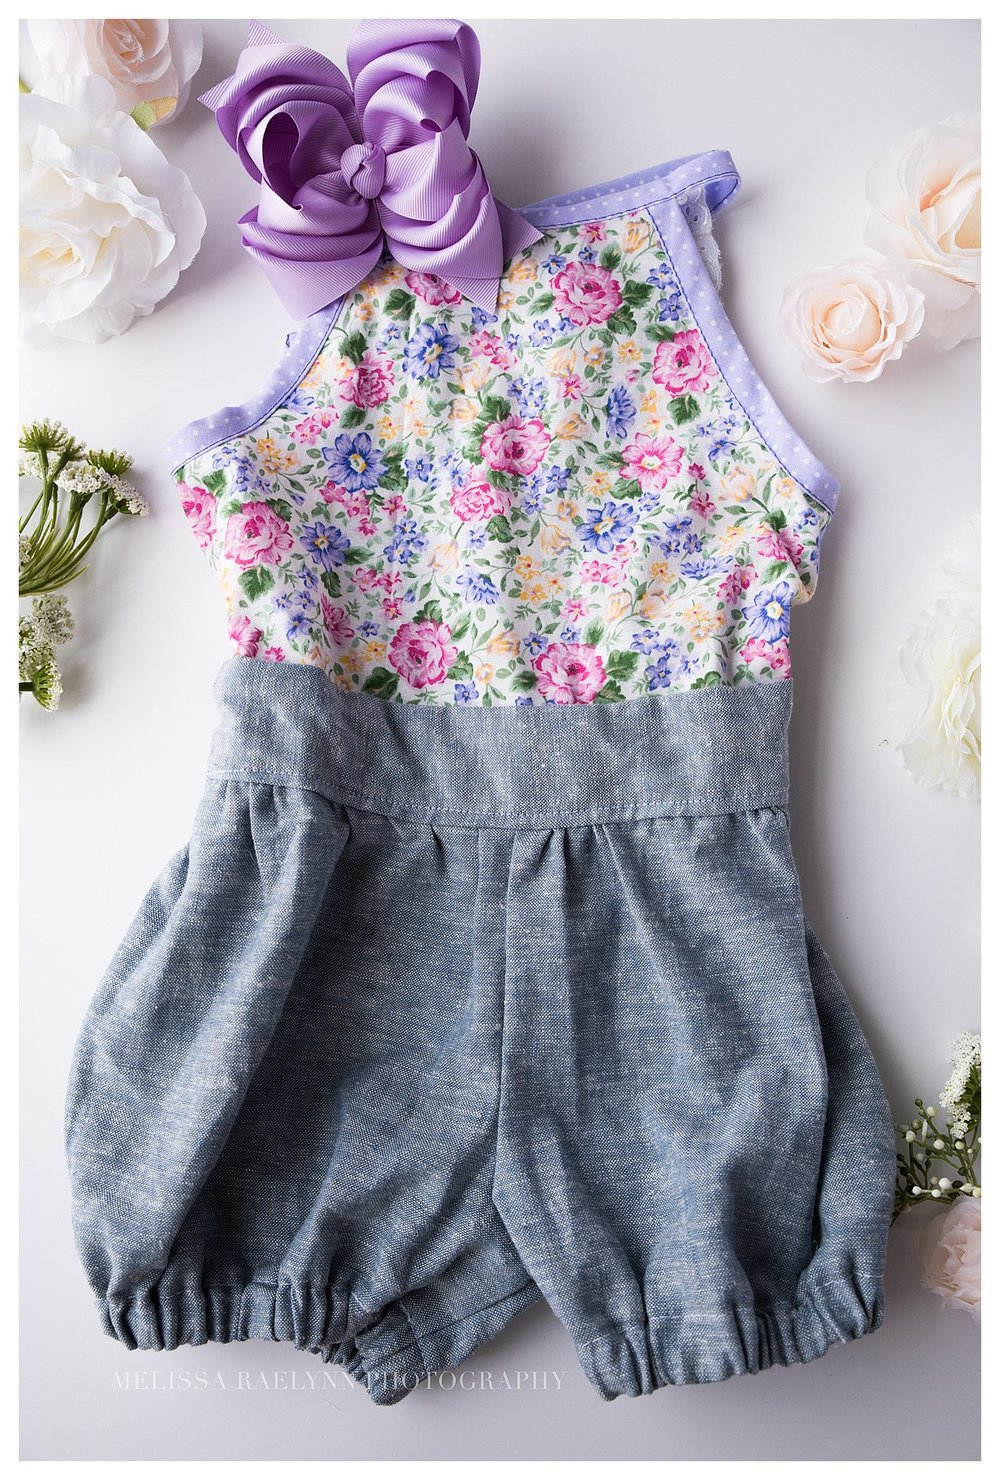 handmade-girls-clothing-support-local.jpg